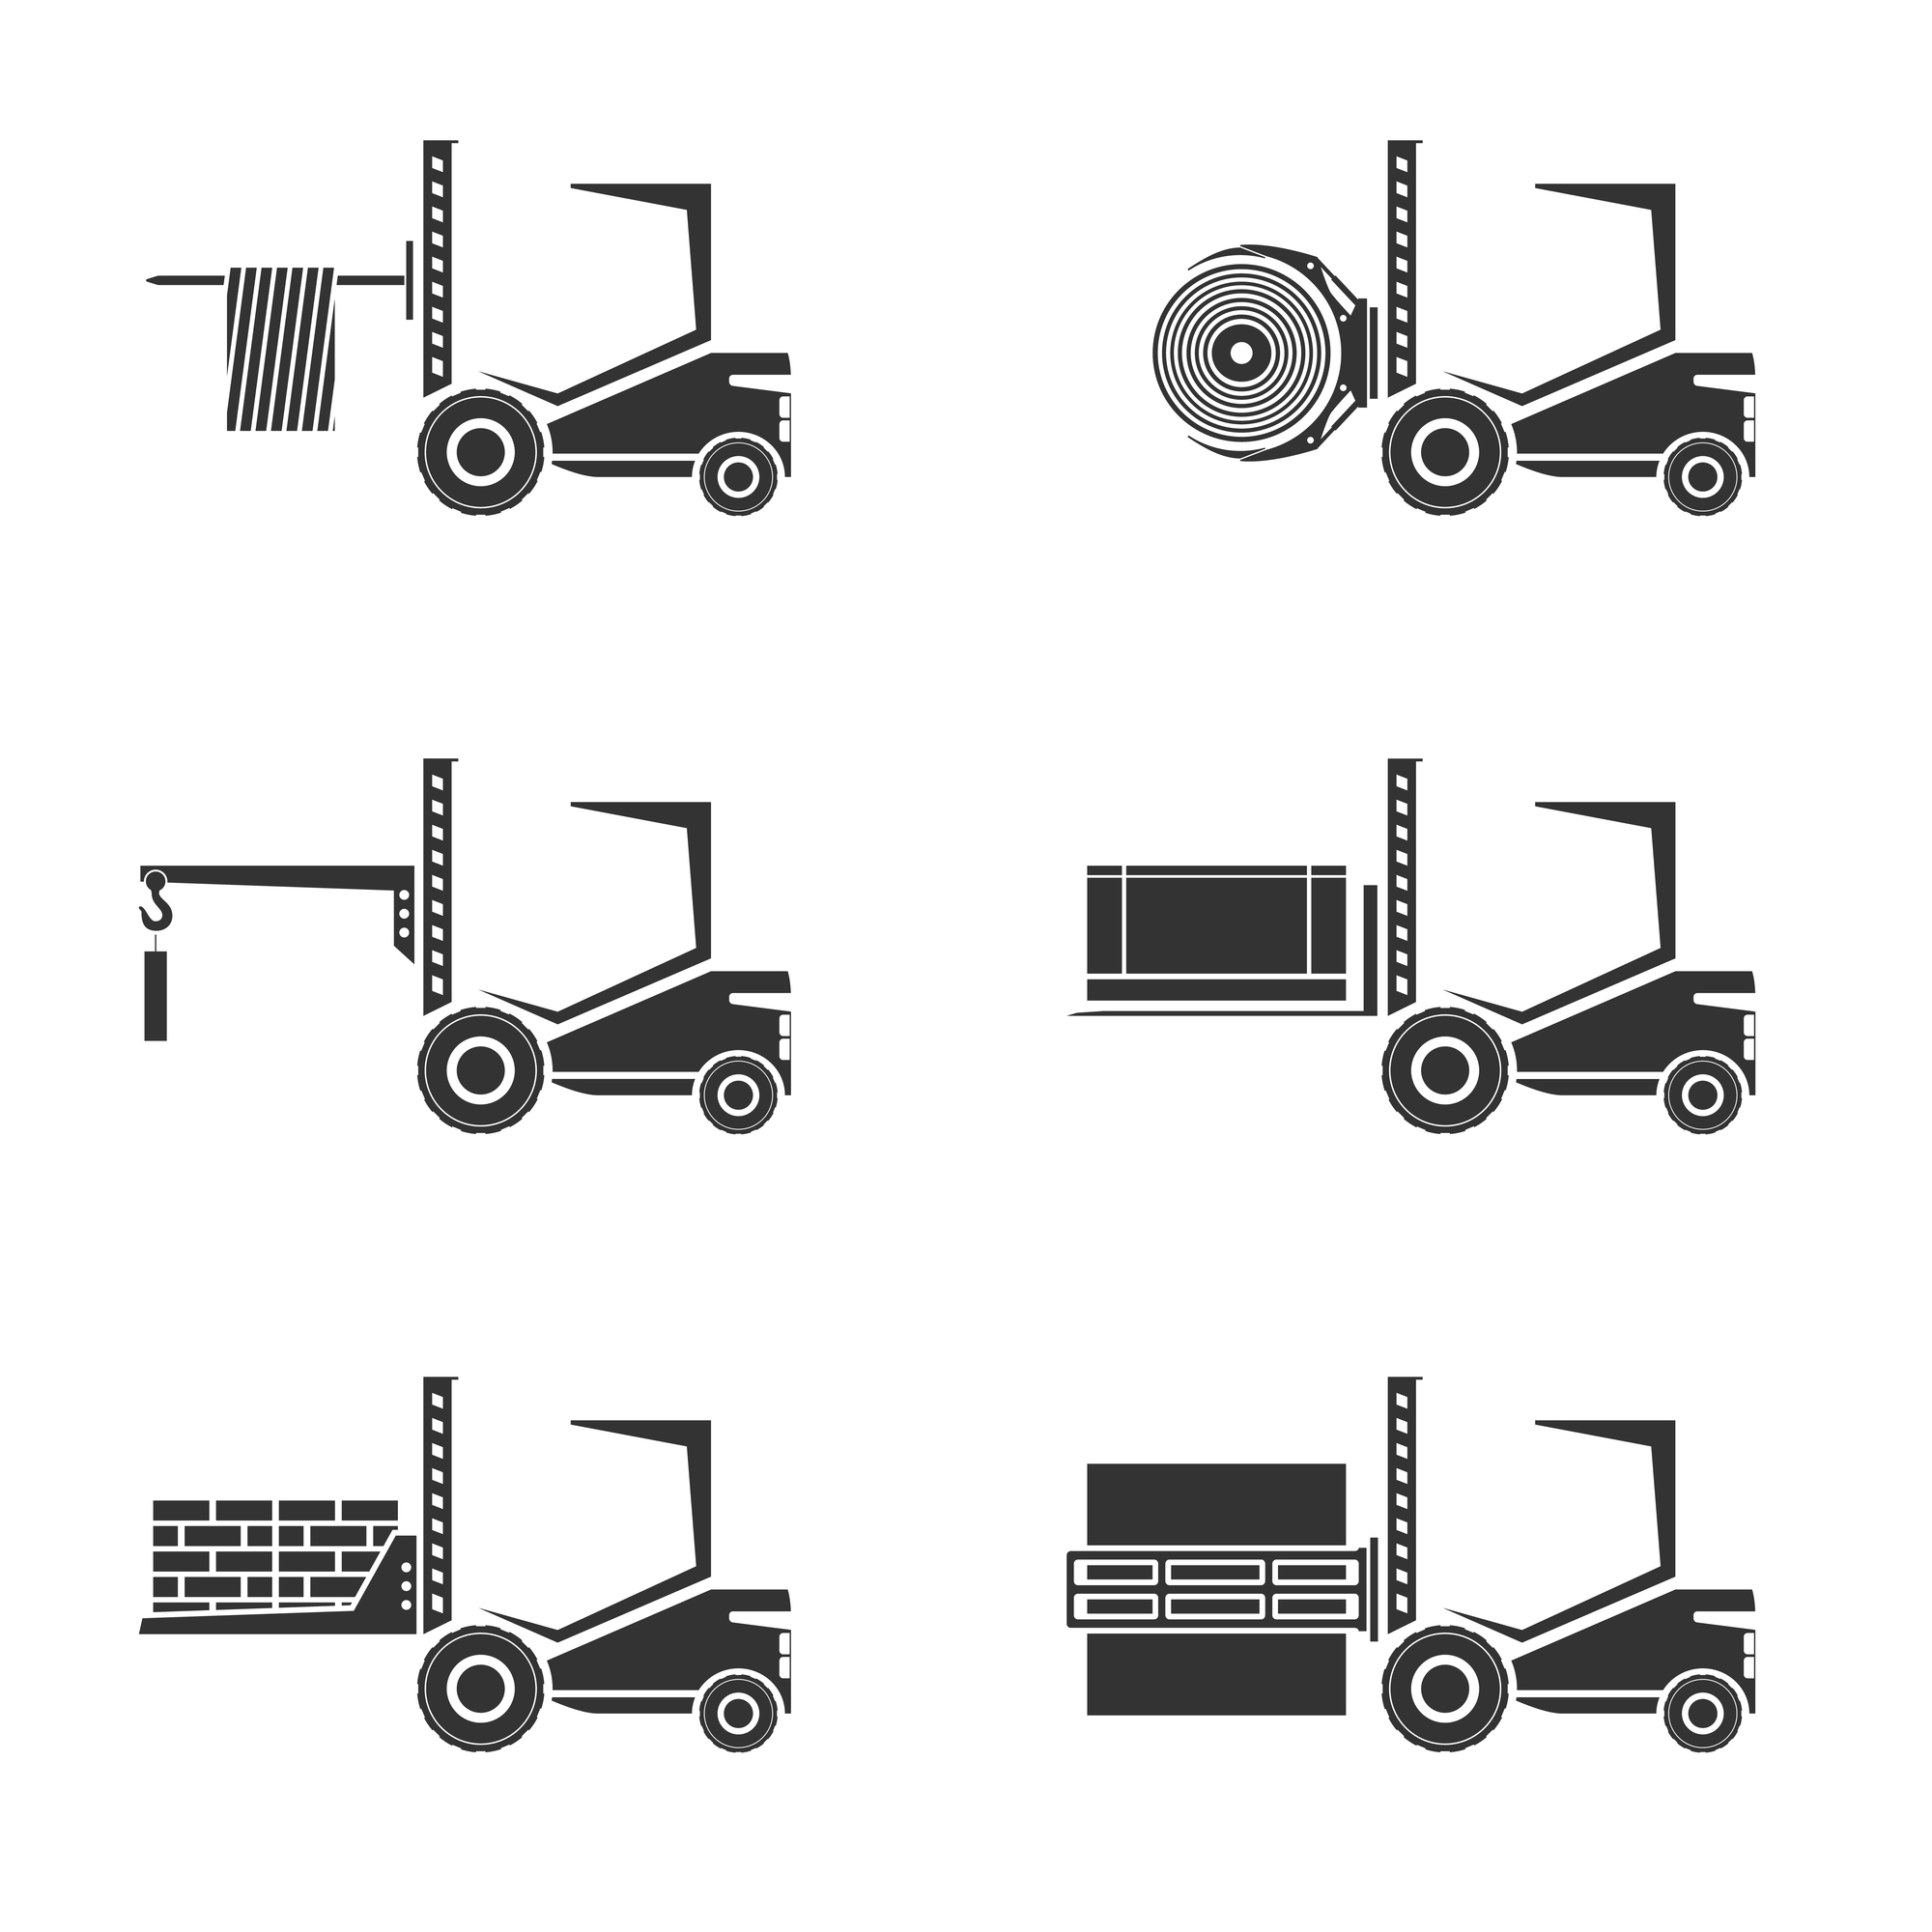 What Types of Forklift Attachments Do You Need?